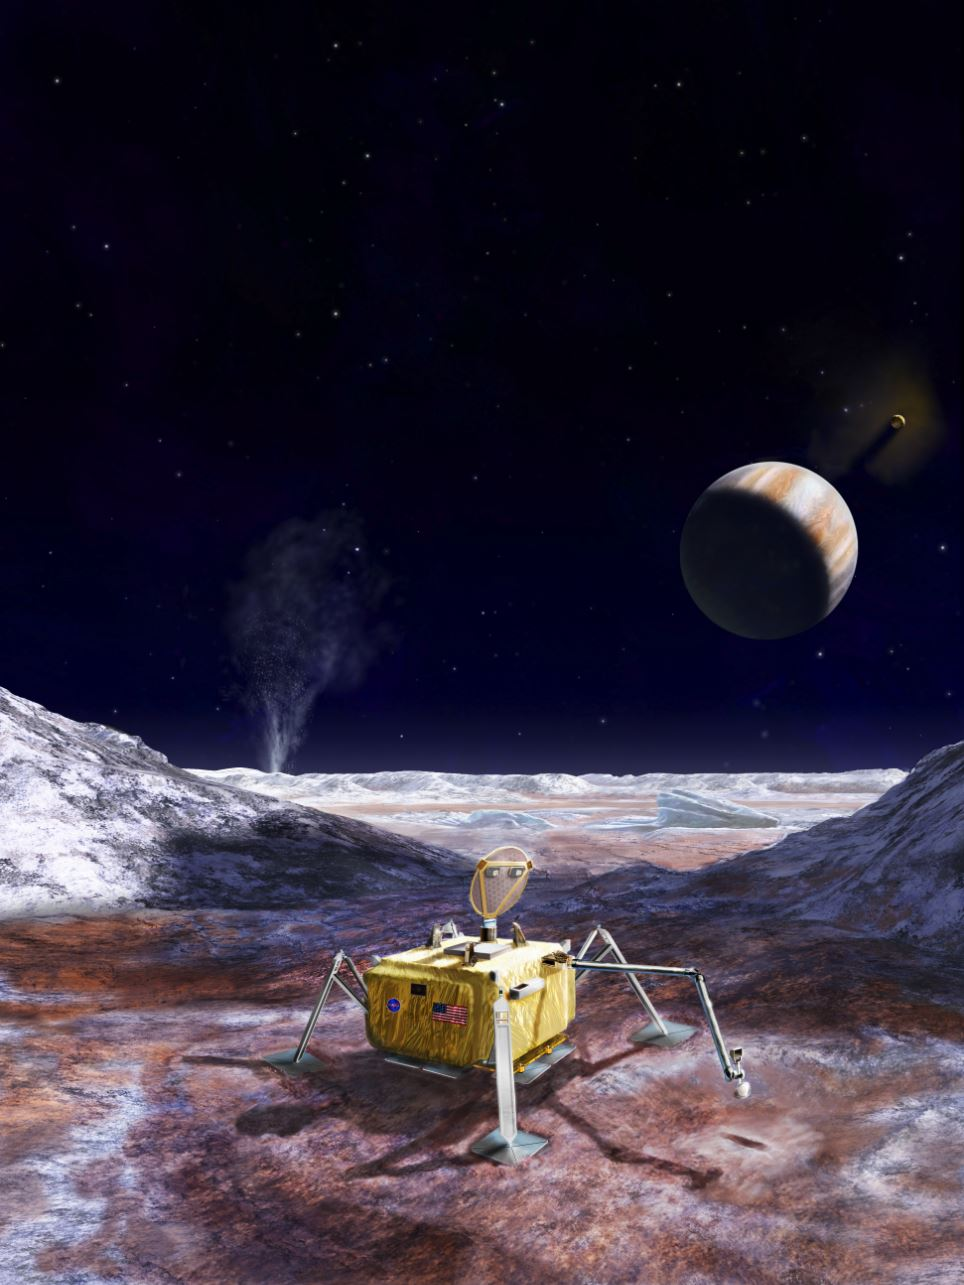 This artist's rendering illustrates a conceptual design for a potential future mission to land a robotic probe on the surface of Jupiter's moon Europa. - Image Credit: NASA/JPL-Caltech